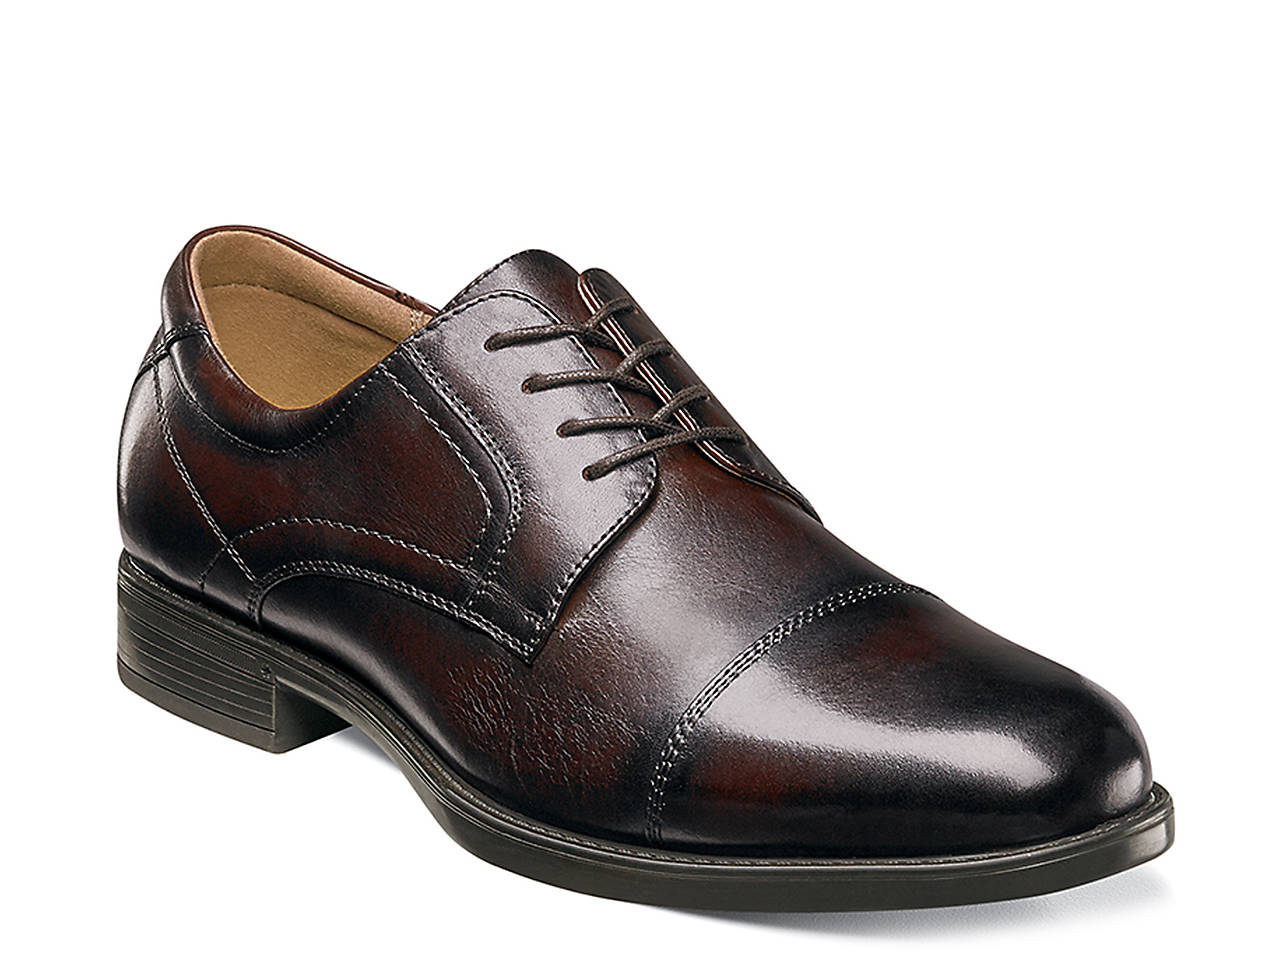 discount amazing price Men's Florsheim Midtown Cap Toe Oxford Dress Shoes pay with paypal sale online really cheap outlet sale online low price for sale 41zDzf